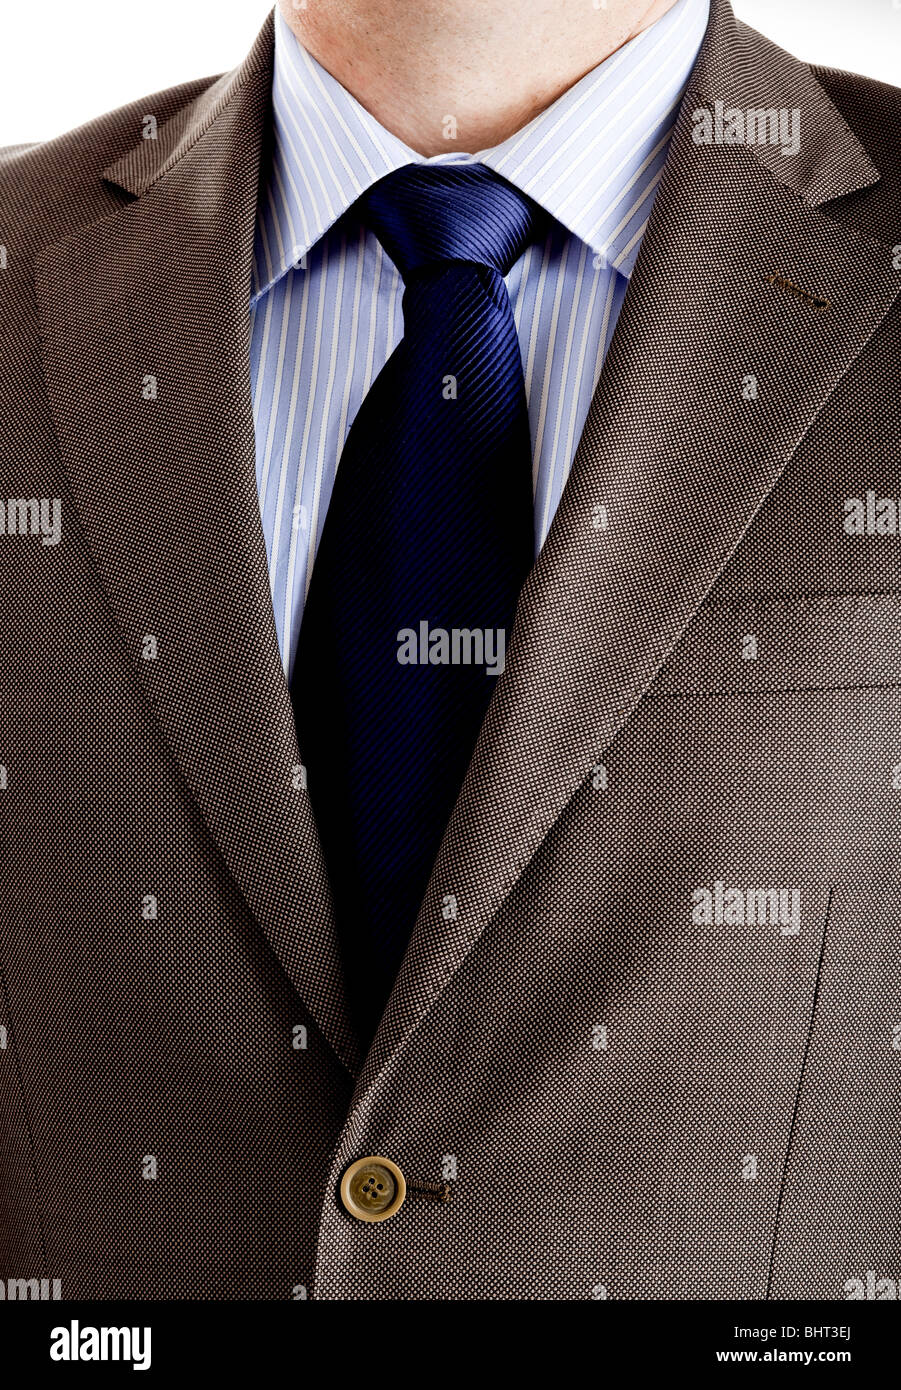 Close-up picture of a business suit with neck necktie - Stock Image